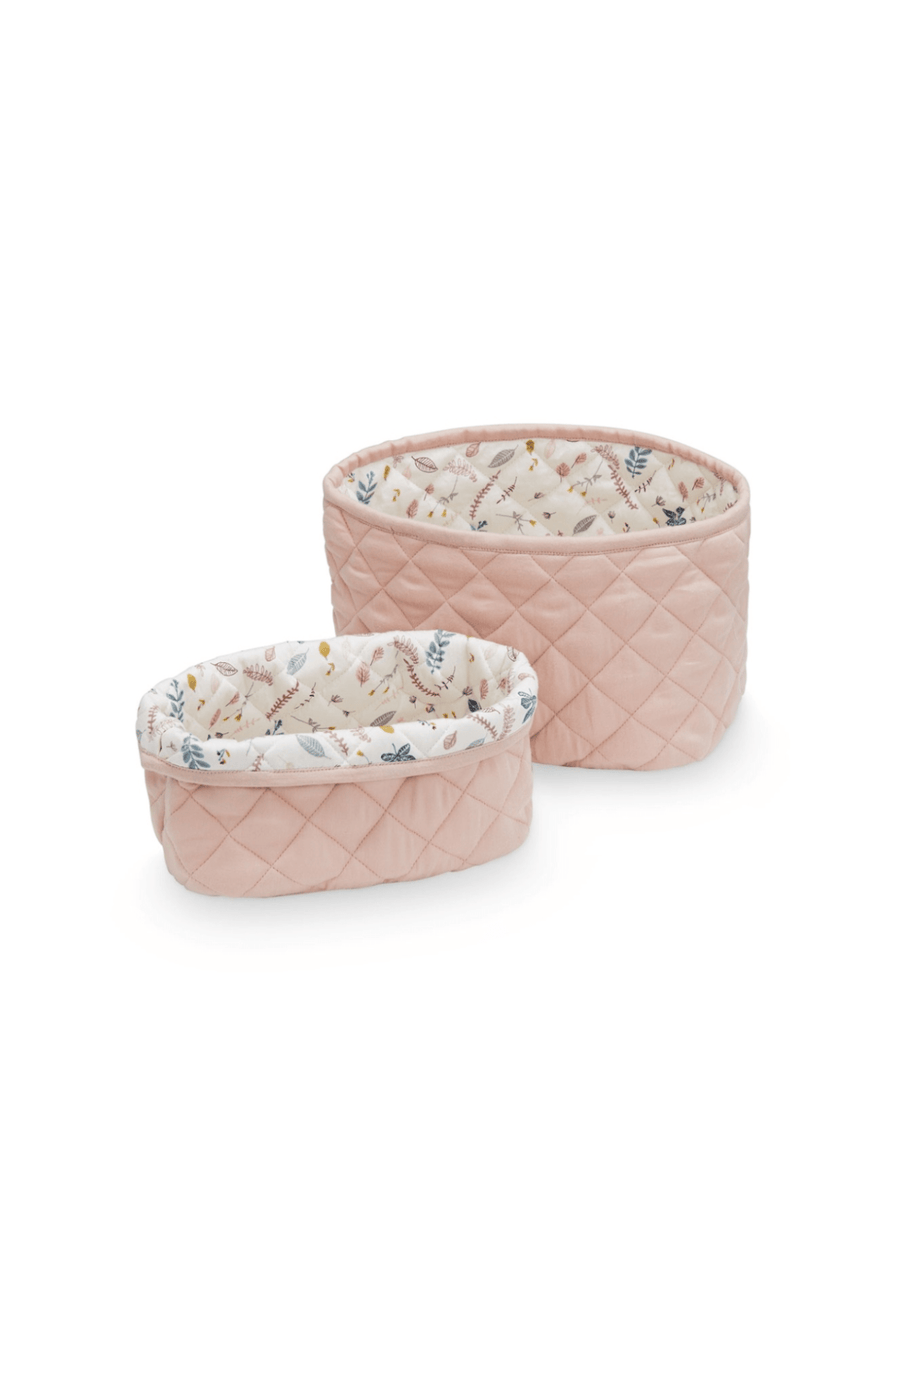 Cam Cam Copenhagen Quilted Storage Basket Set of 2 - Blossom PInk